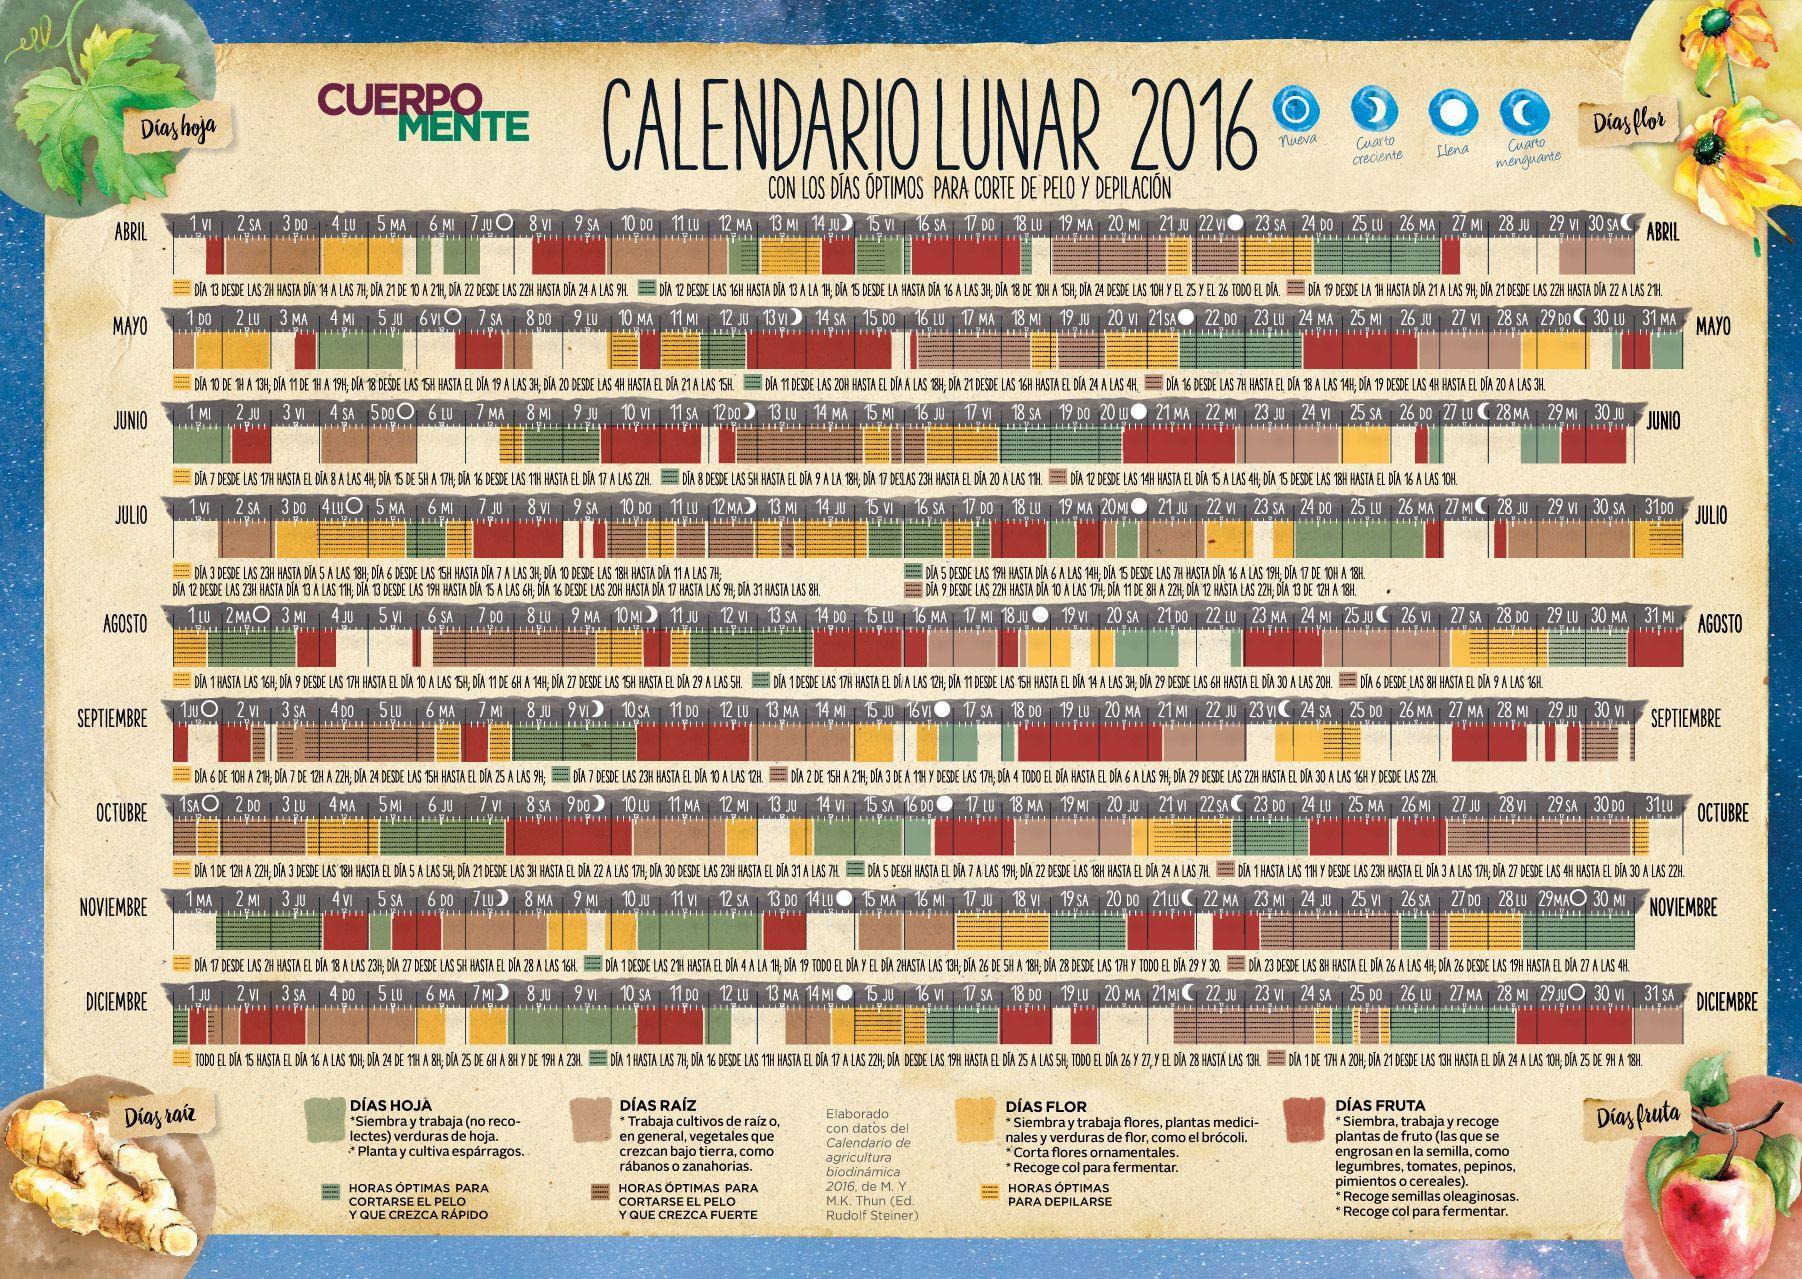 Calendario lunar julio 2016 colombia july 2016 calendar for Cambio lunar julio 2016